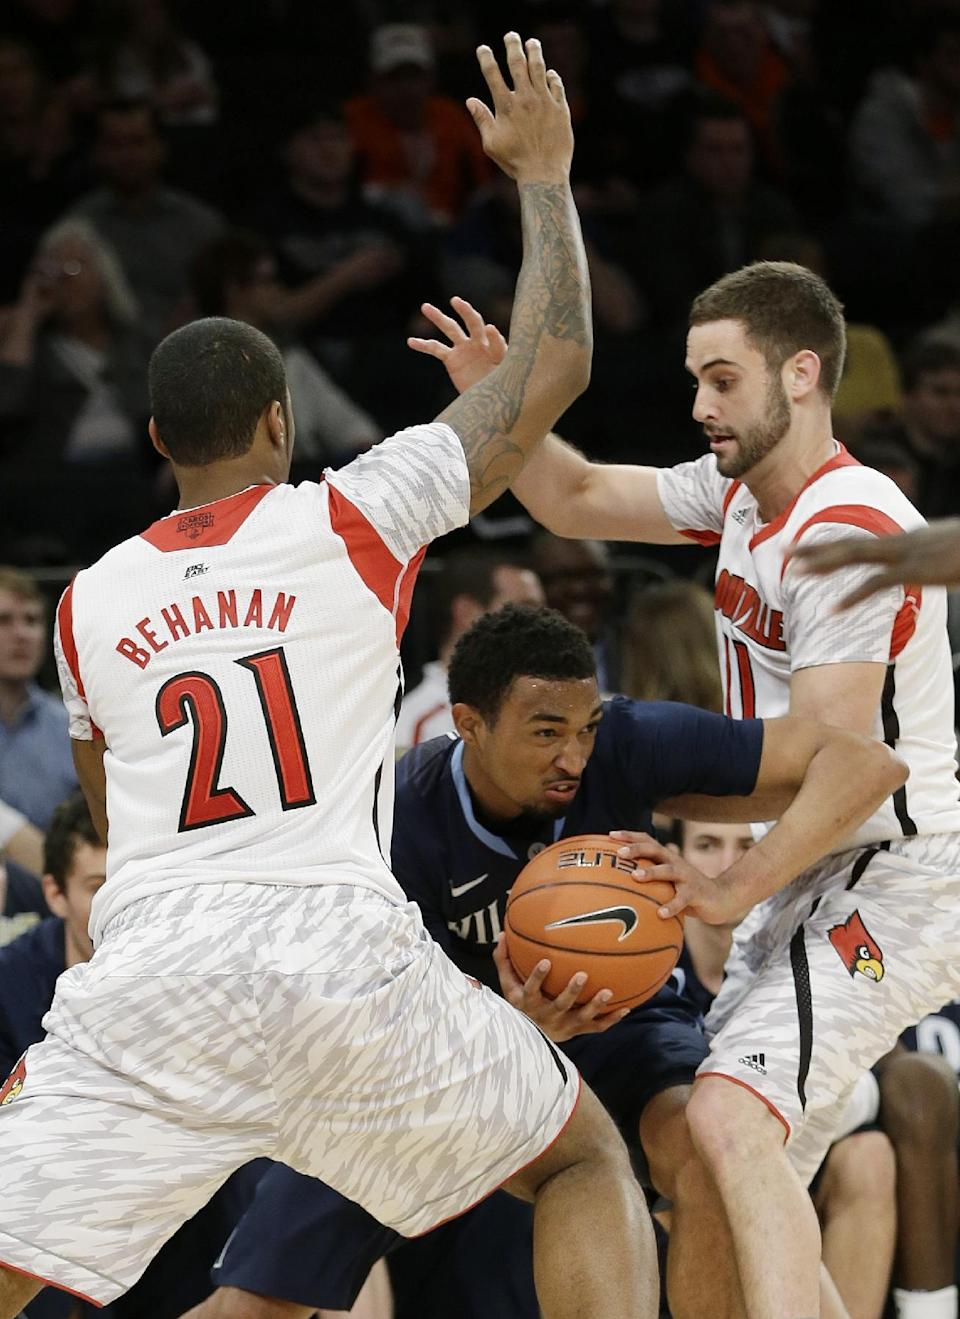 Villanova's Darrun Hilliard, center, is defended by Louisville's Luke Hancock, right, and Chane Behanan, left, during the second half of an NCAA college basketball game at the Big East Conference tournament, Thursday, March 14, 2013, in New York. (AP Photo/Frank Franklin II)